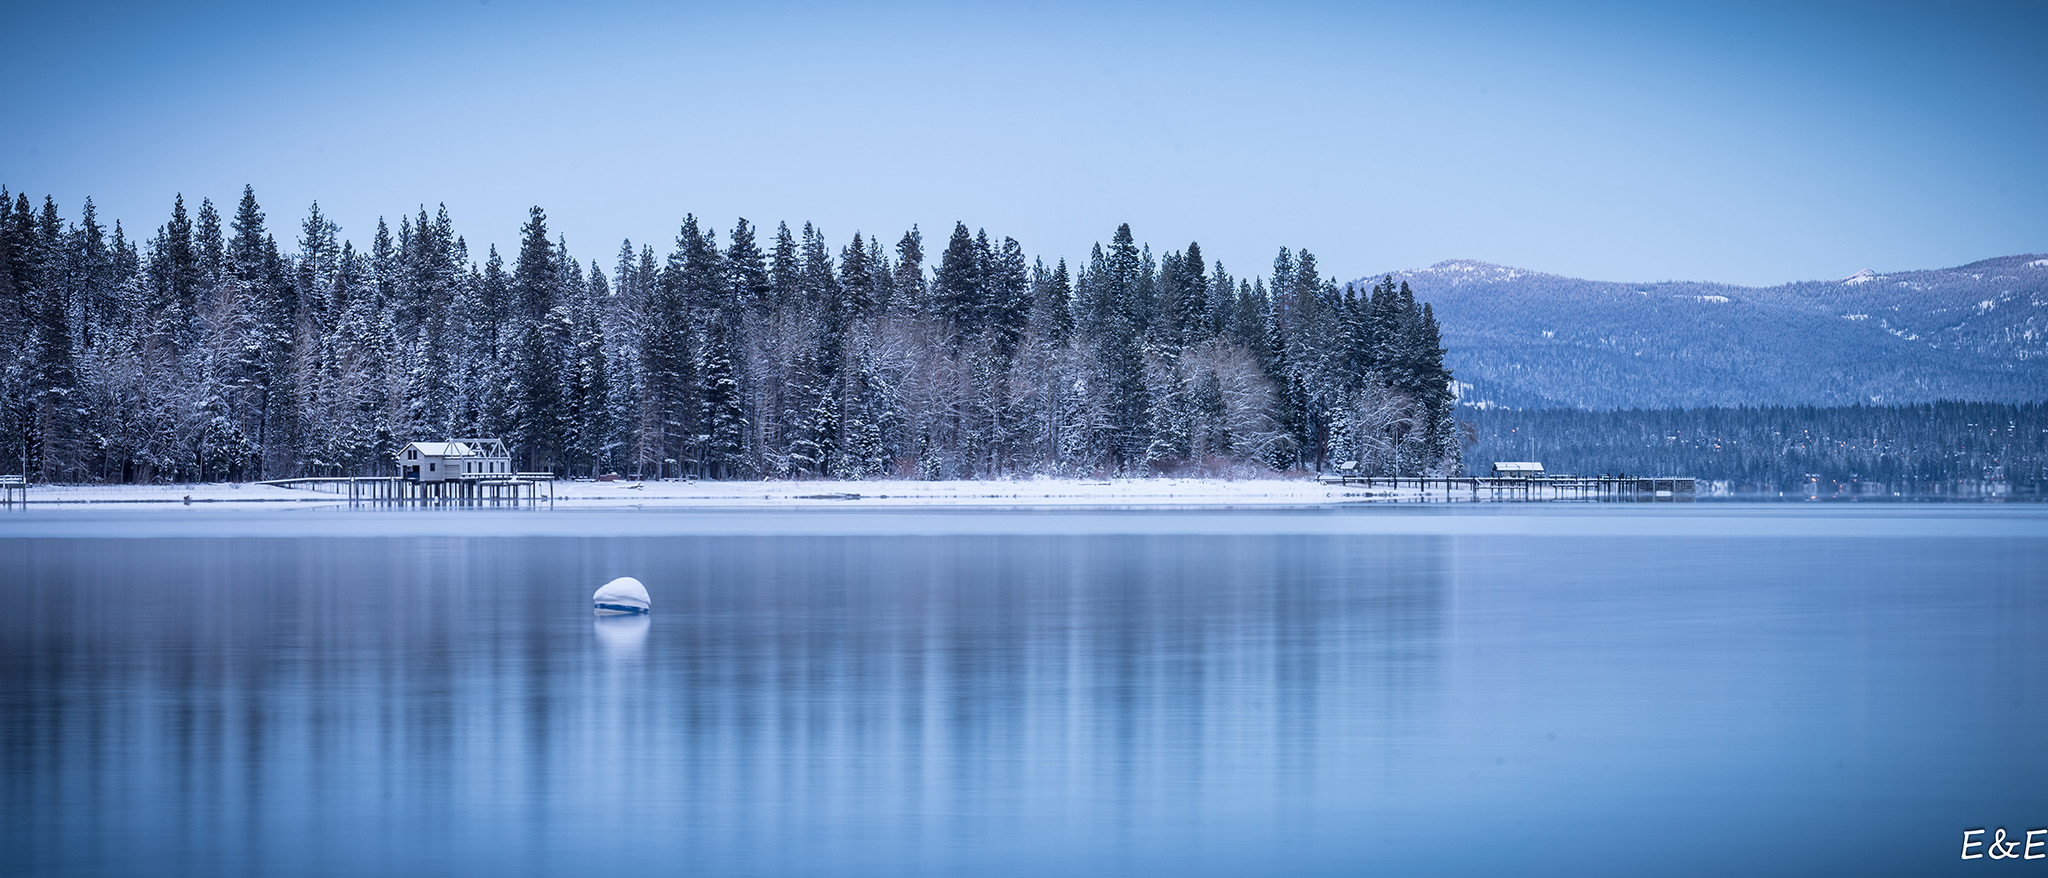 Winter scene at Lake Tahoe.